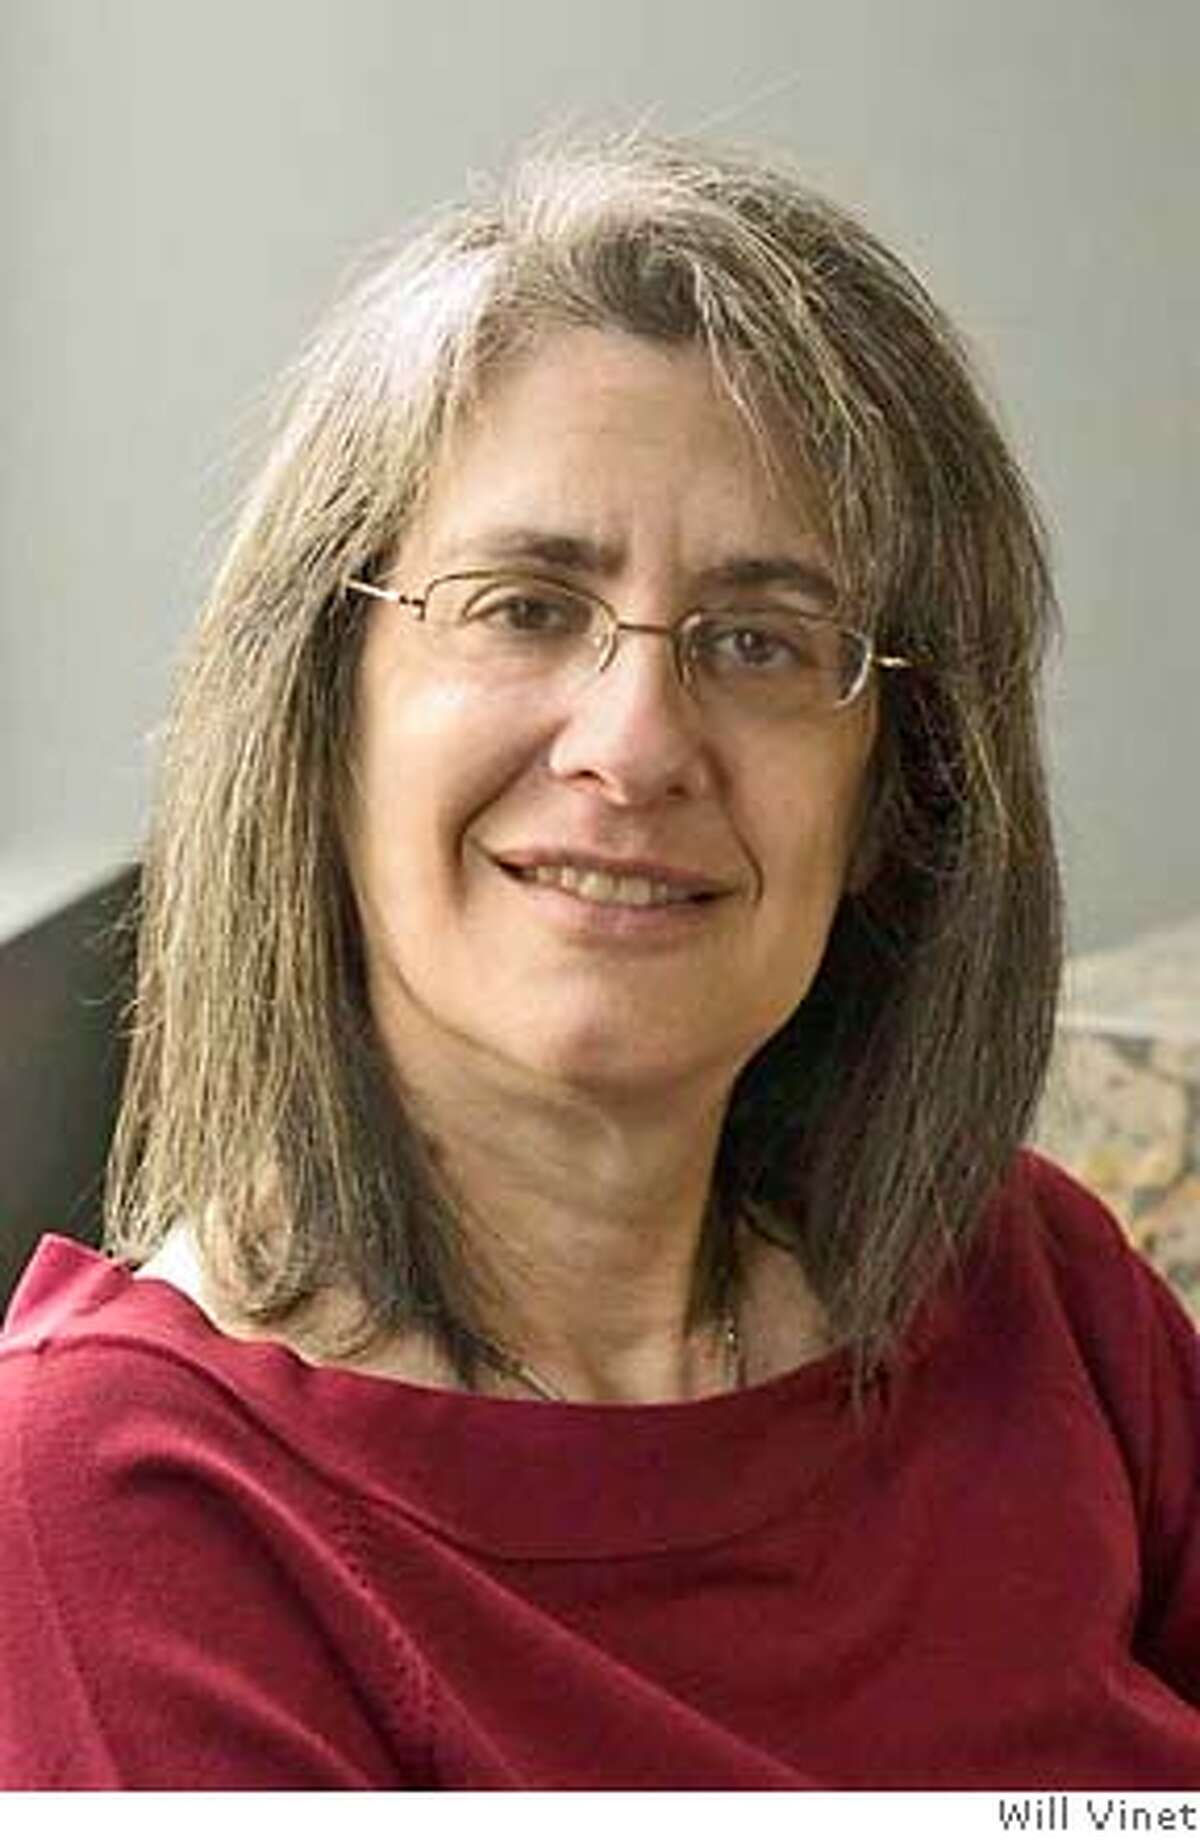 Elyn Saks author photo credit is Photo by Will Vinet